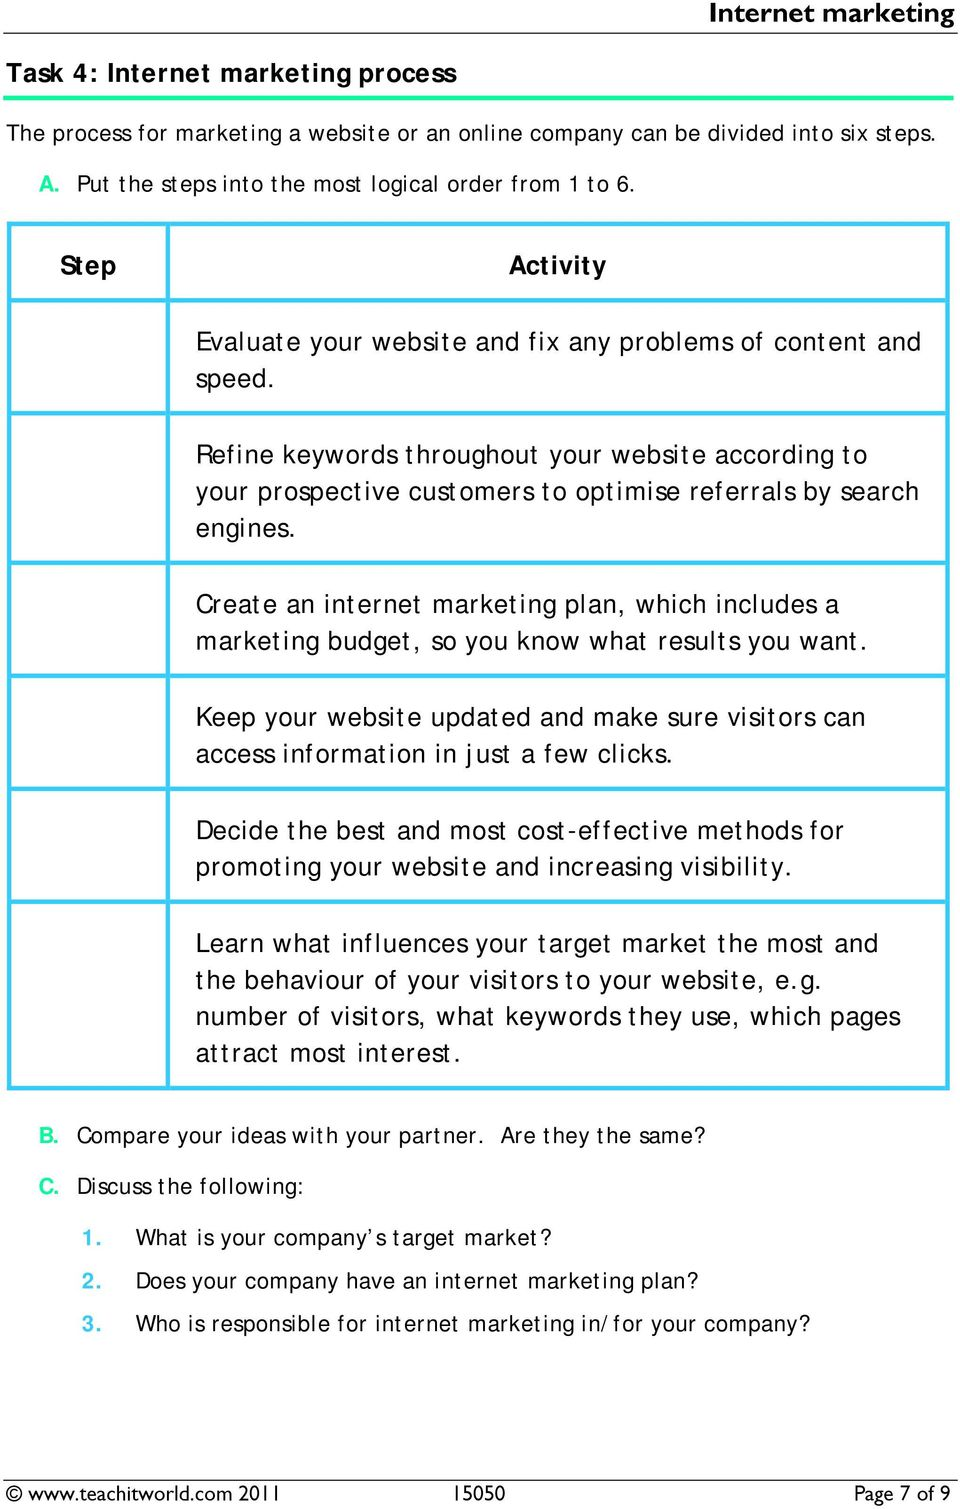 Create an internet marketing plan, which includes a marketing budget, so you know what results you want. Keep your website updated and make sure visitors can access information in just a few clicks.